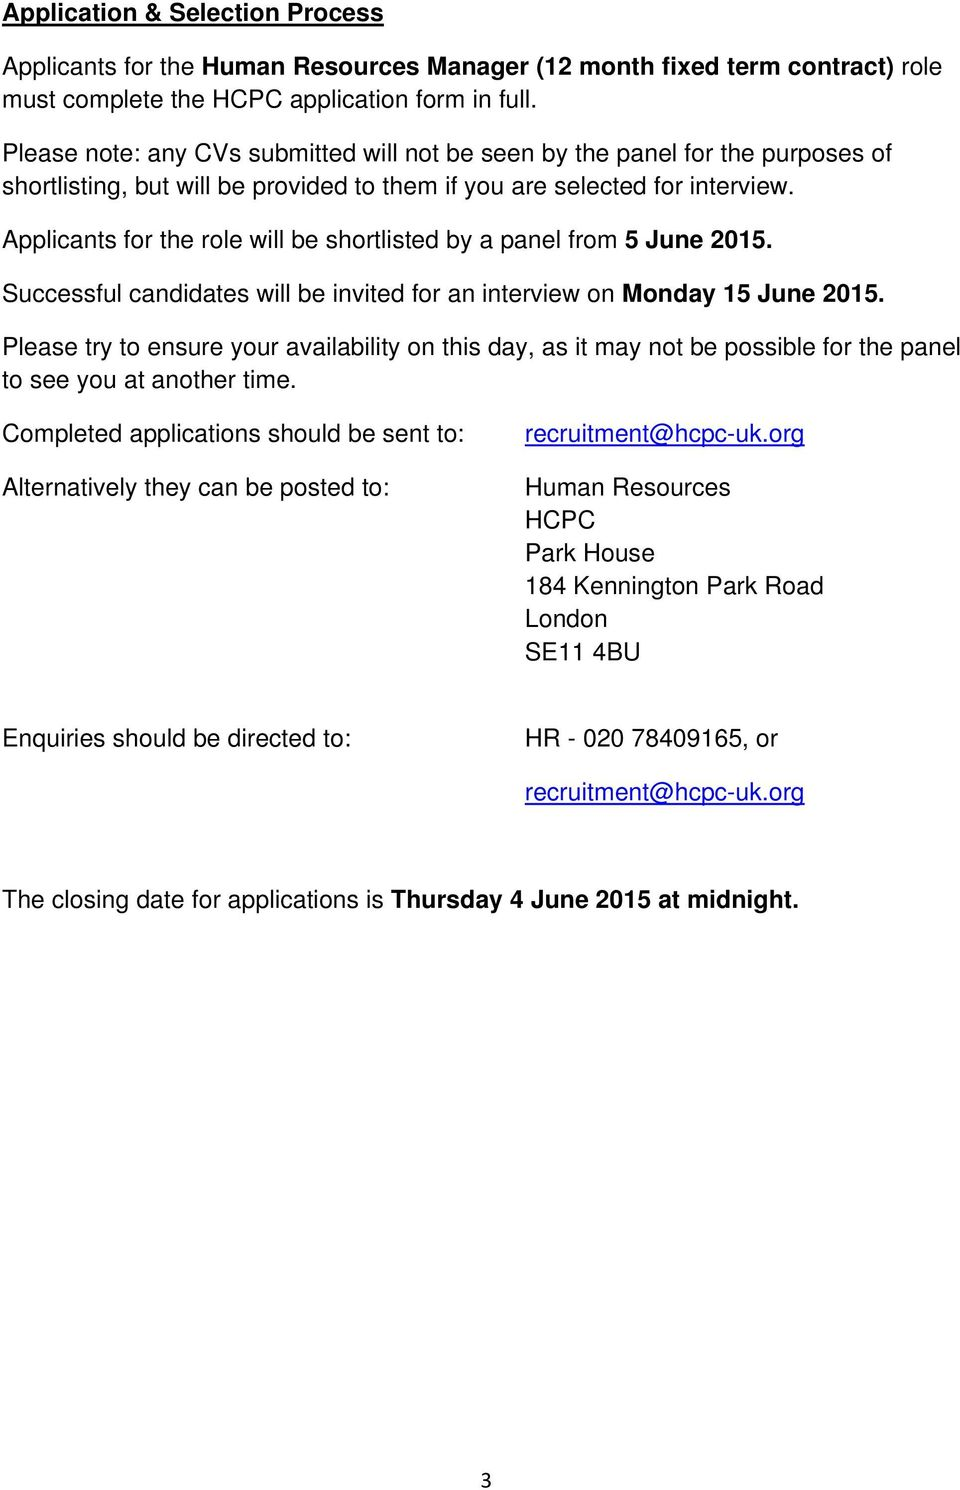 Applicants for the role will be shortlisted by a panel from 5 June 2015. Successful candidates will be invited for an interview on Monday 15 June 2015.